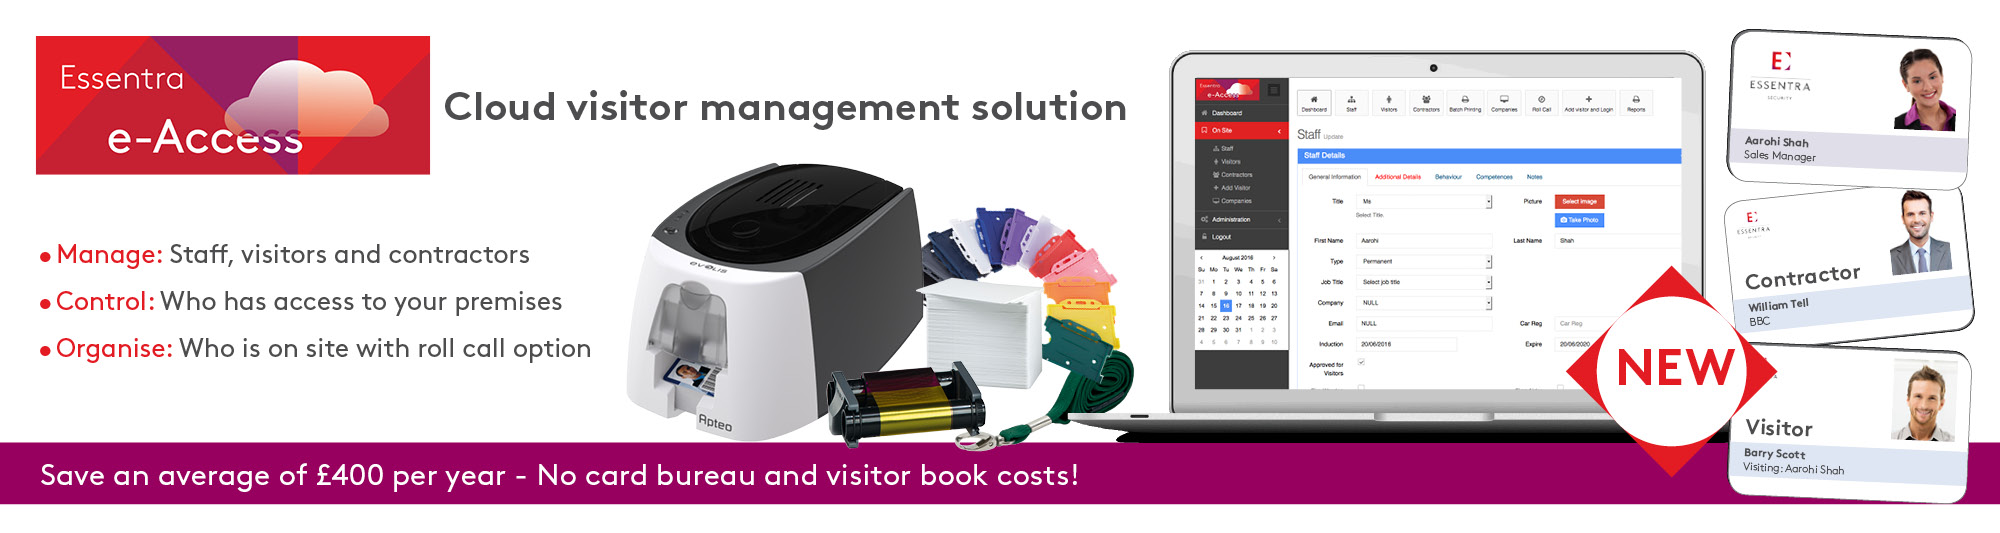 Essentra e-Access cloud visitor management solution